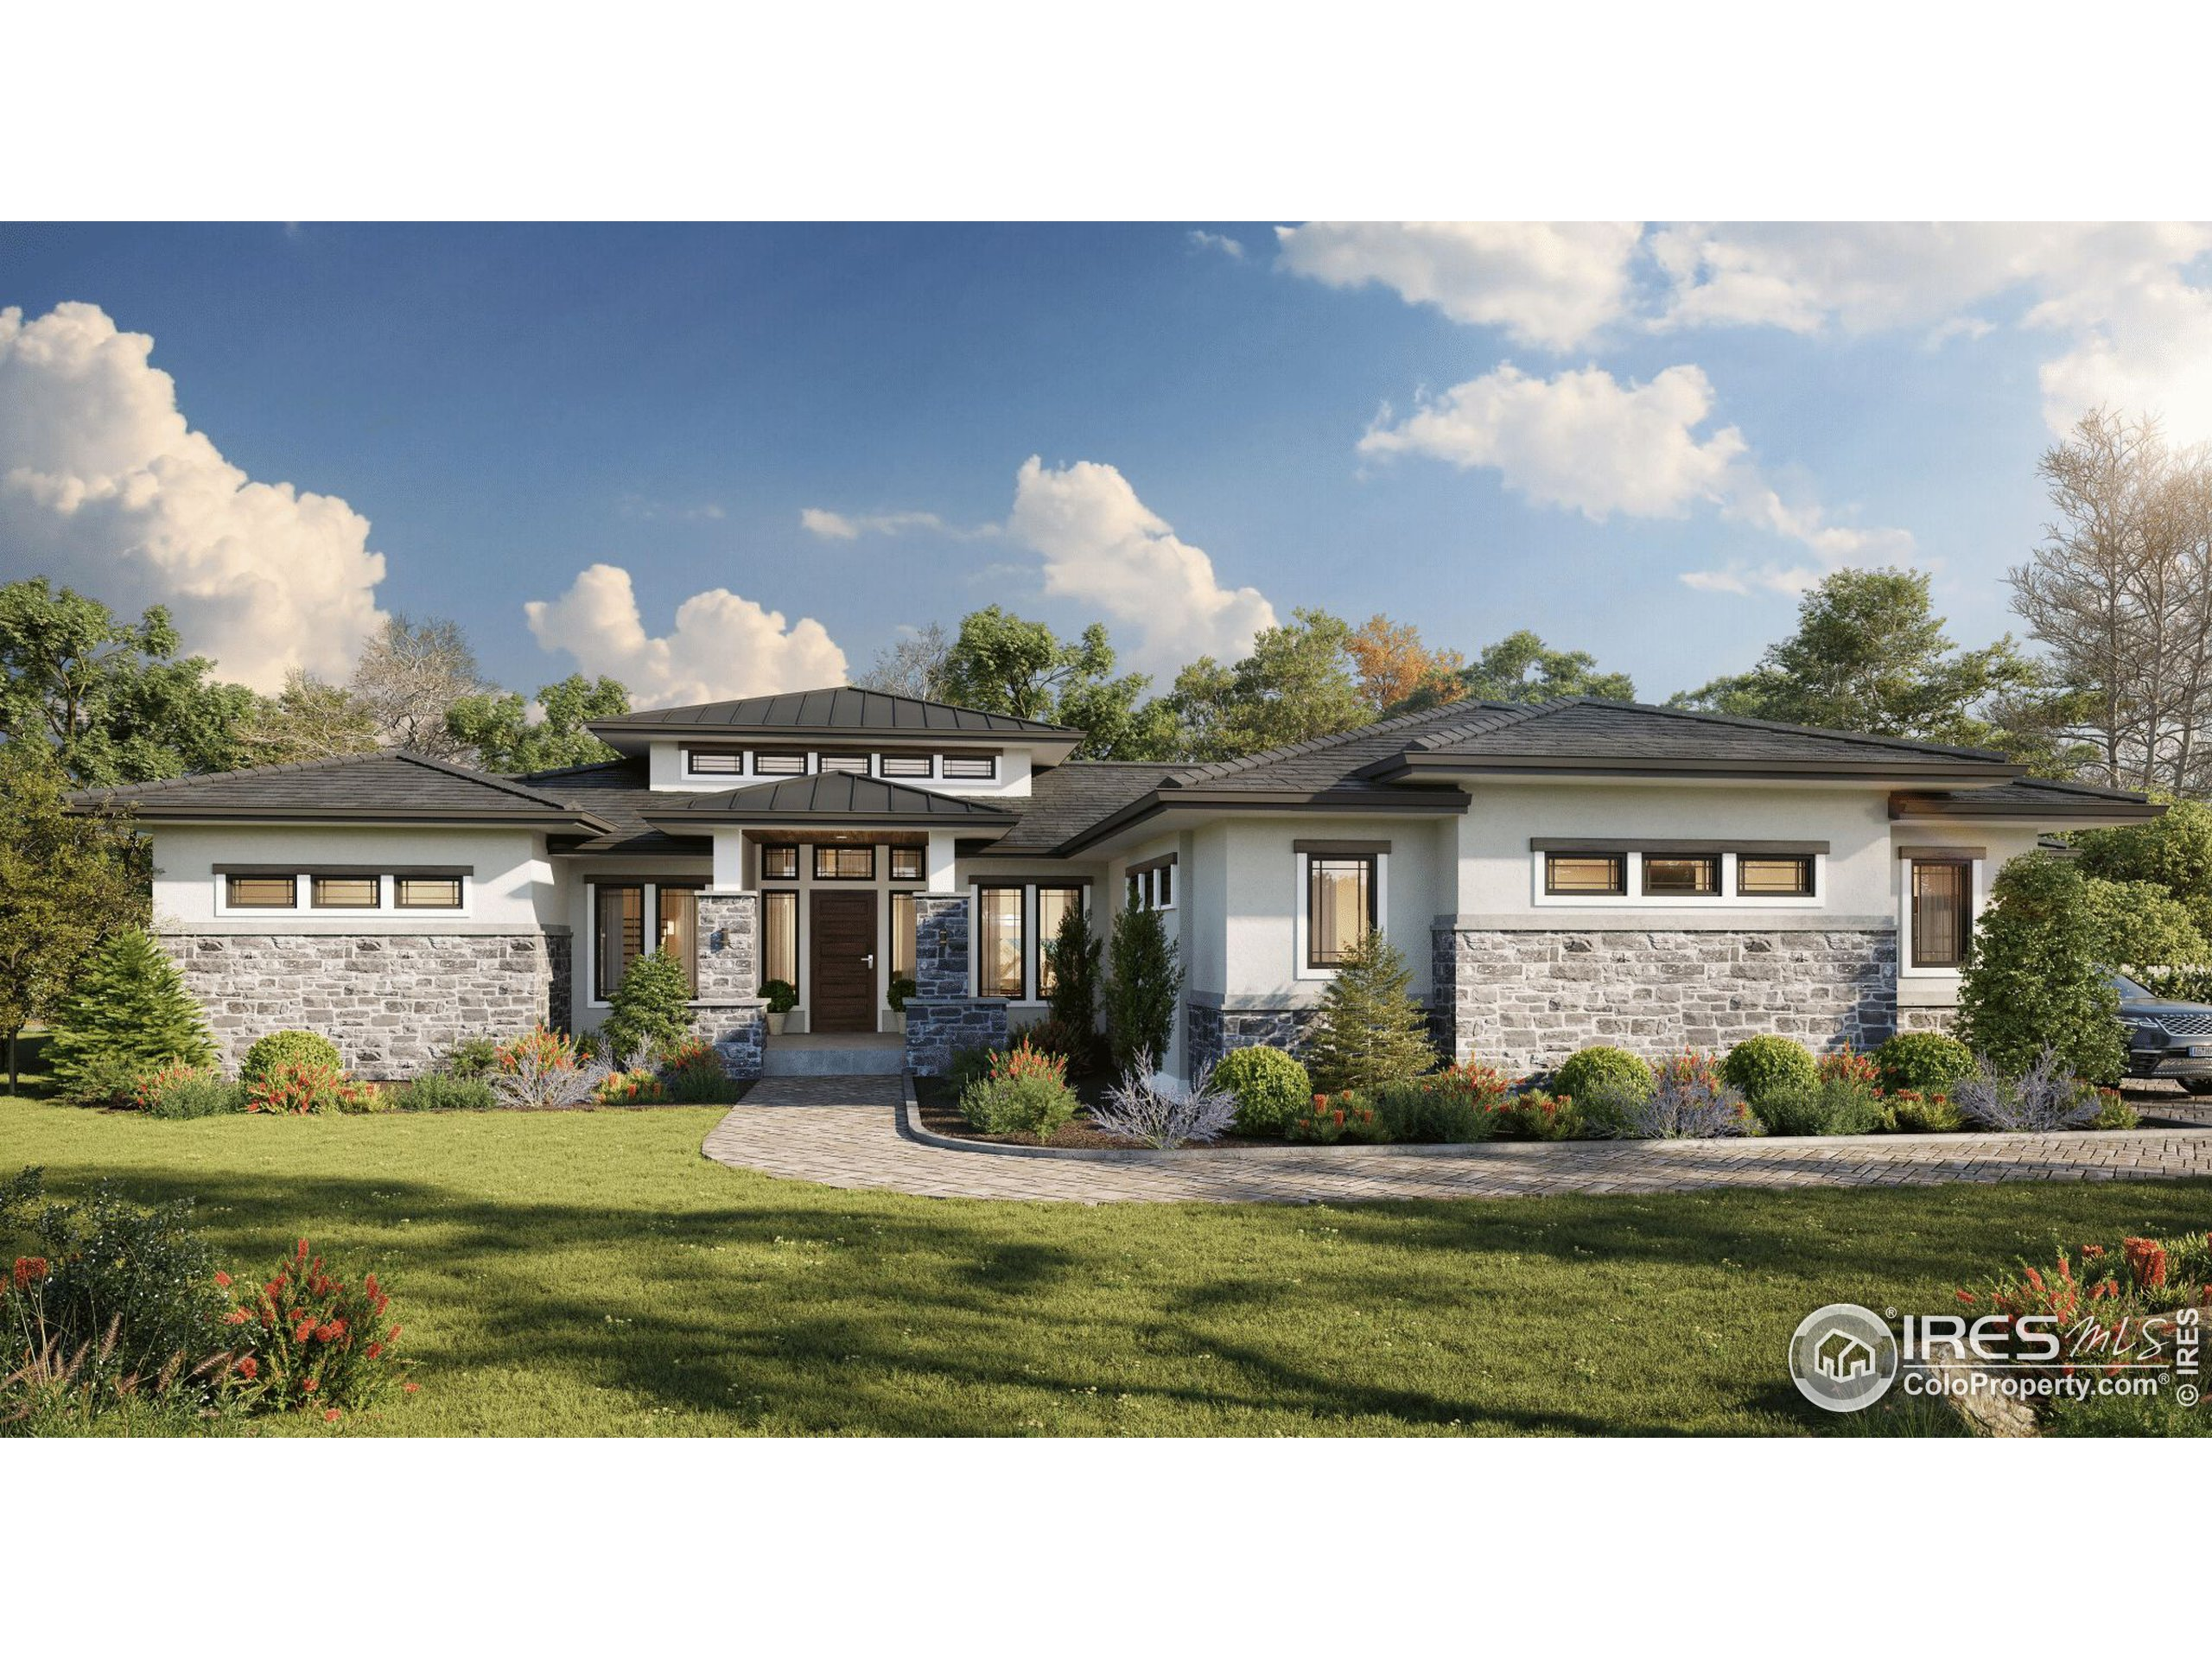 Front Rendering of Home To-Be-Built